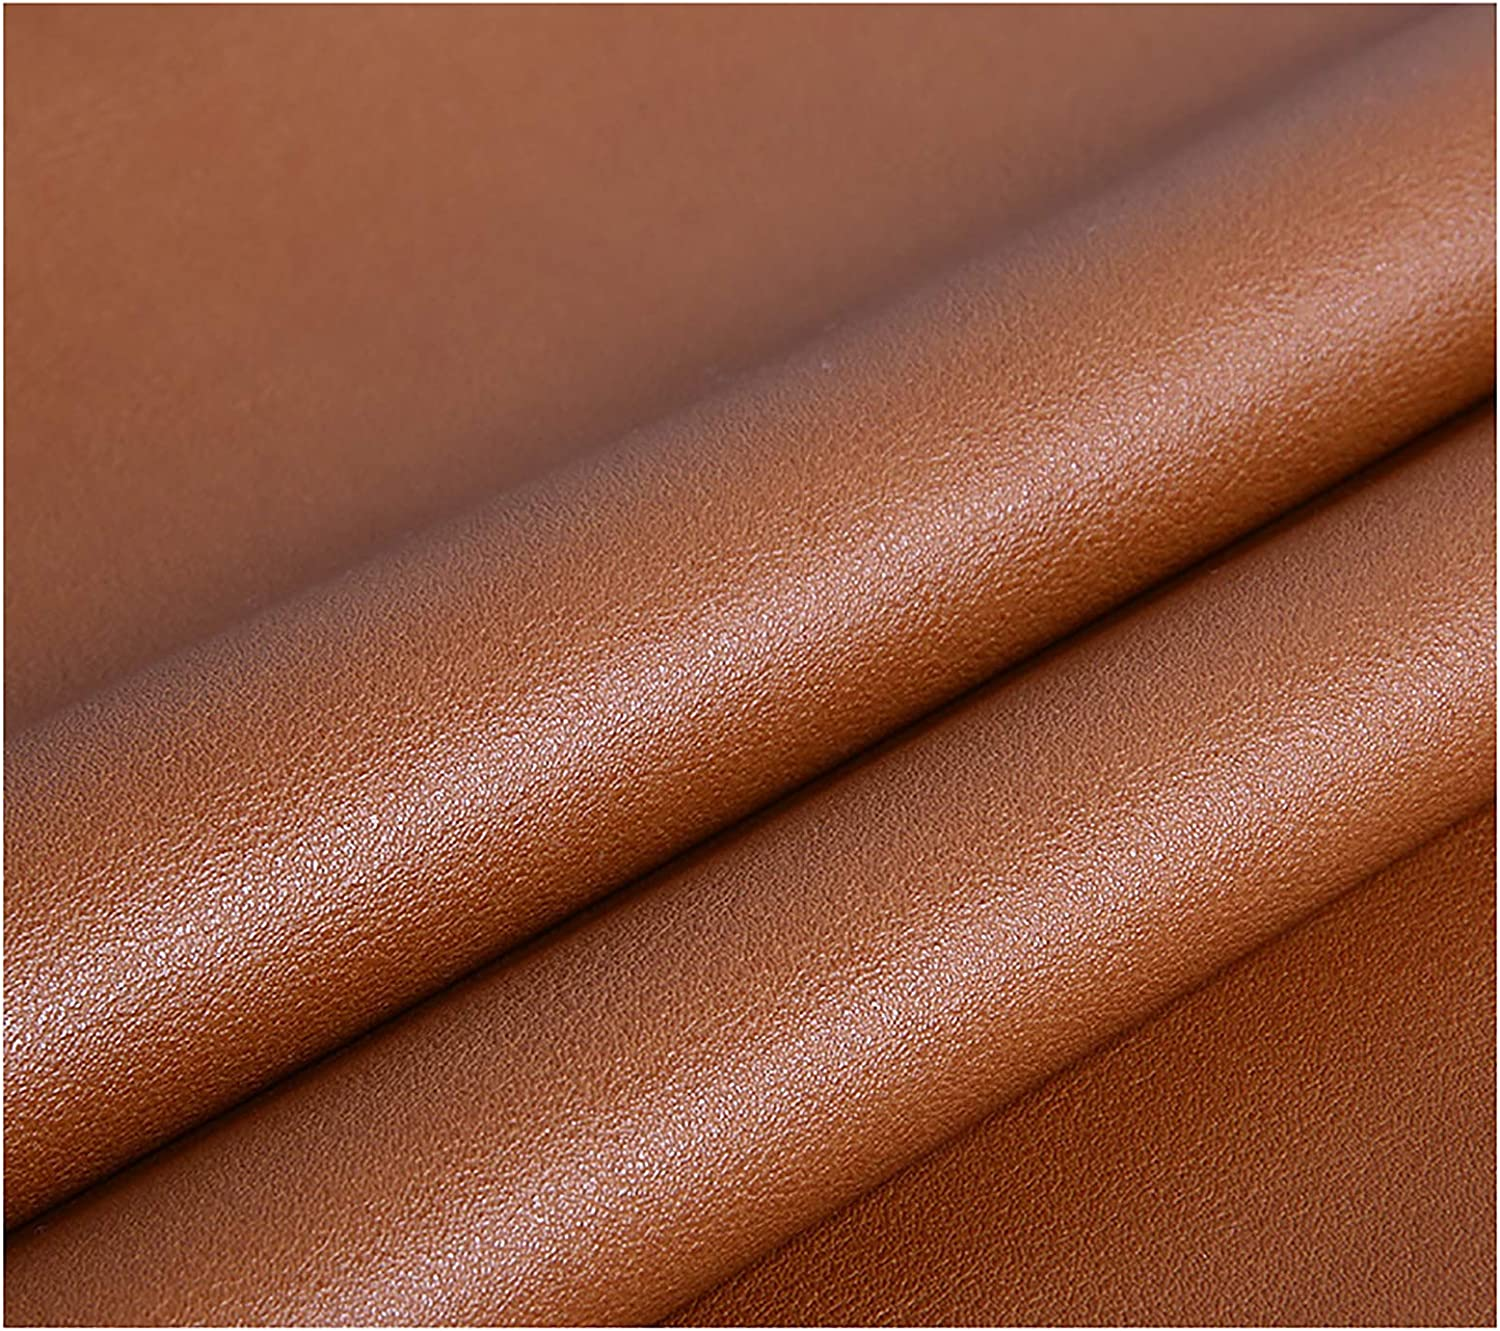 Solid Color Max 81% OFF 1 Translated 2mm Thick Faux Vinyl Leather Fabric Leatherette Le